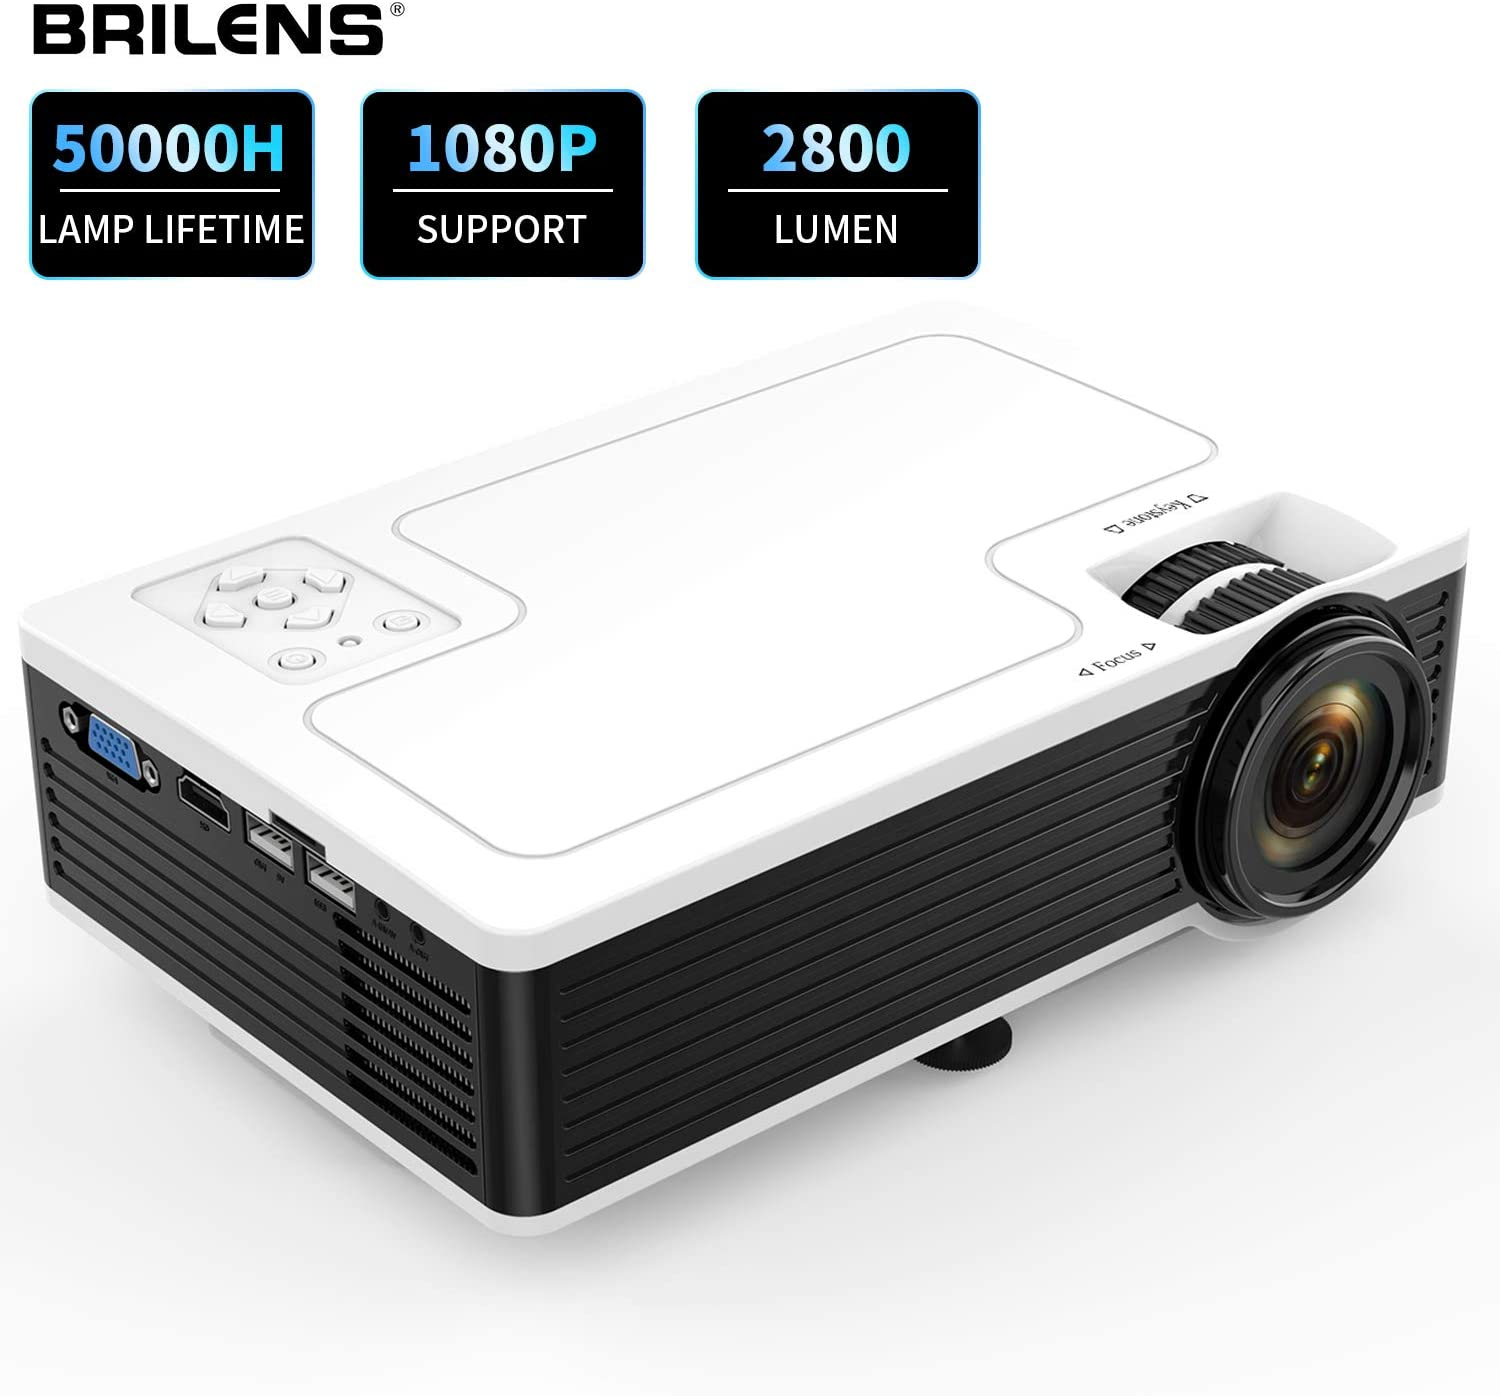 "Movie Projector BRILENS Full HD 1080P Mini Projector LED Portable Home Theater Indoor Outdoor Compatible with HDMI USB VGA AV TV TF 30,000 Hours for Cinema Laptop Game 300"" Image Dispay"